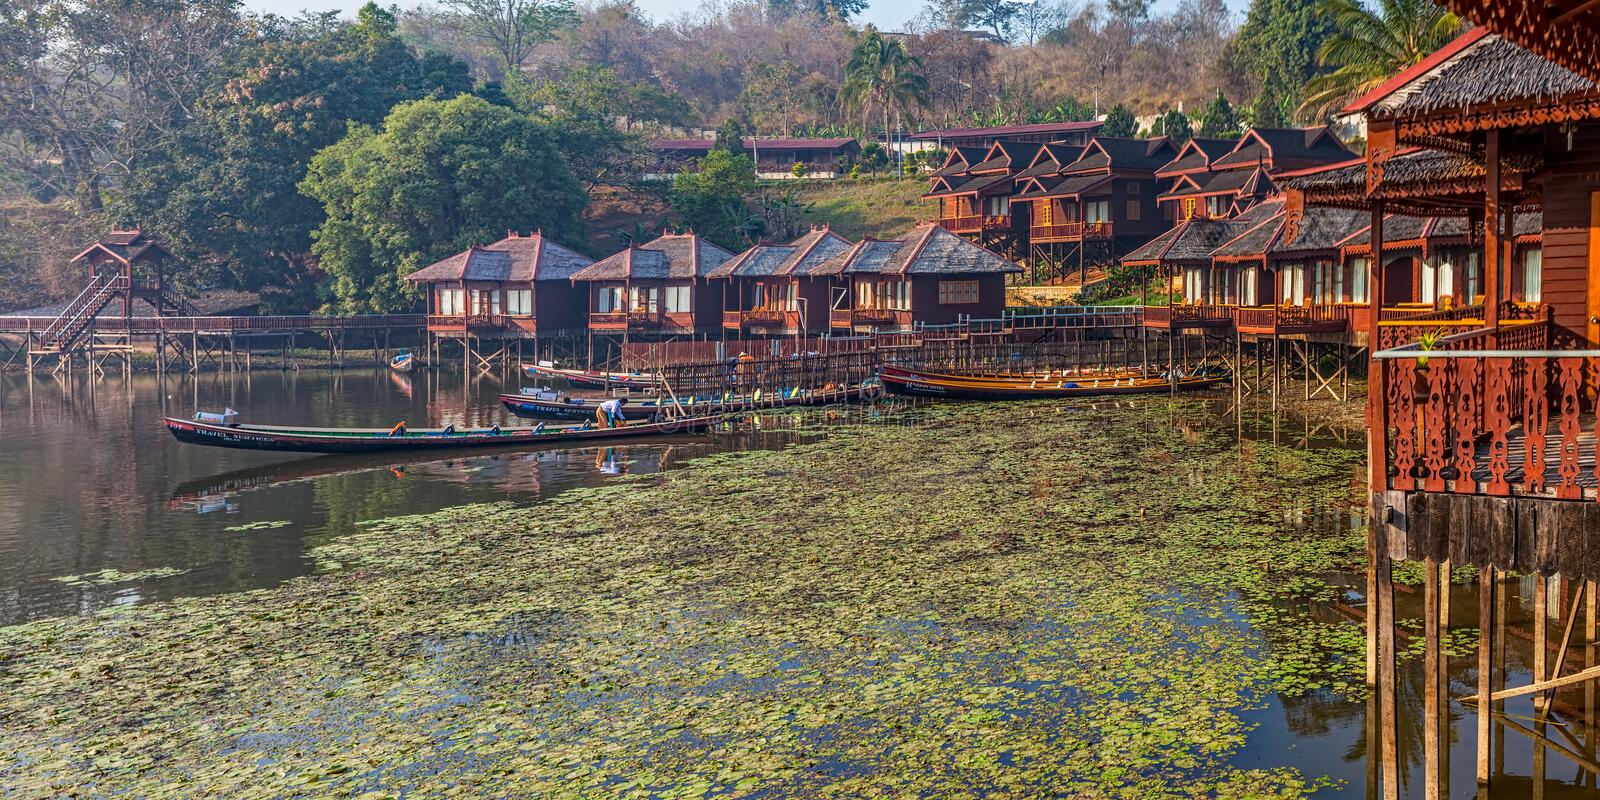 Inle lake hotels. INLE LAKE, MYANMAR - FEBRUARY 27: Replica of the traditional floating village engineered as a hotel with bungalows on February 27, 2013 in Inle stock photo